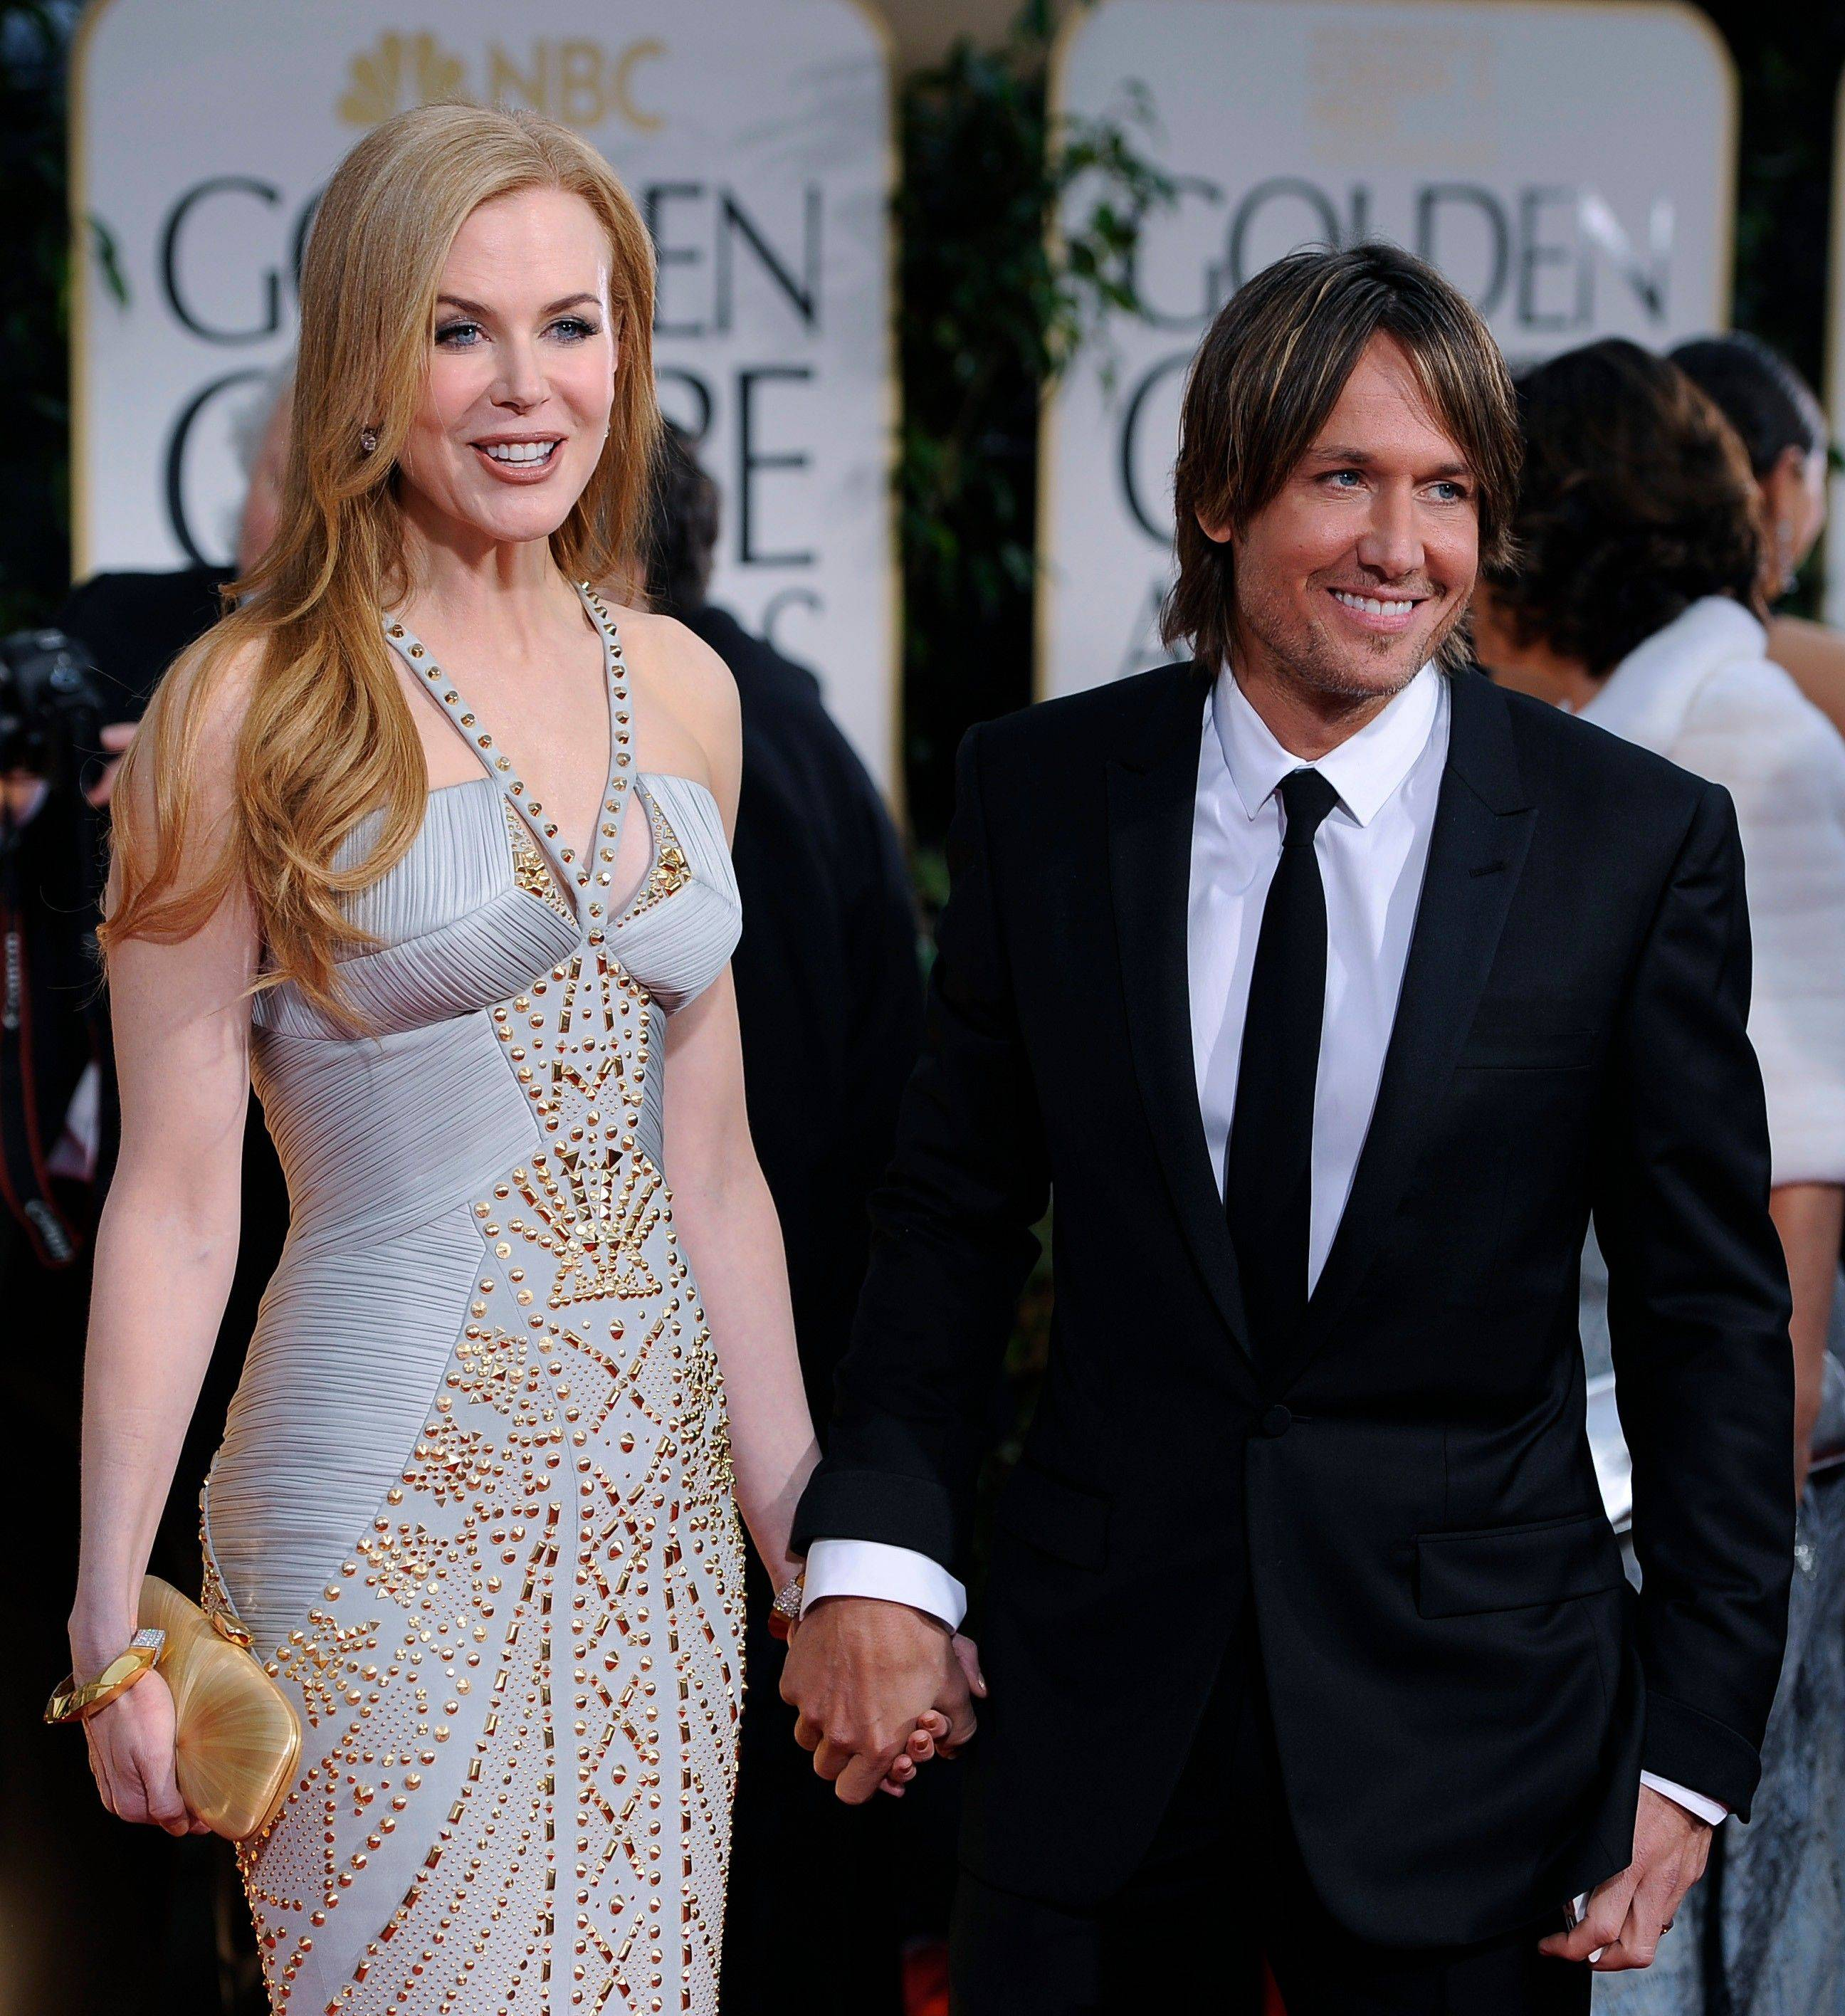 Nicole Kidman and Keith Urban arrive at the 69th Annual Golden Globe Awards.